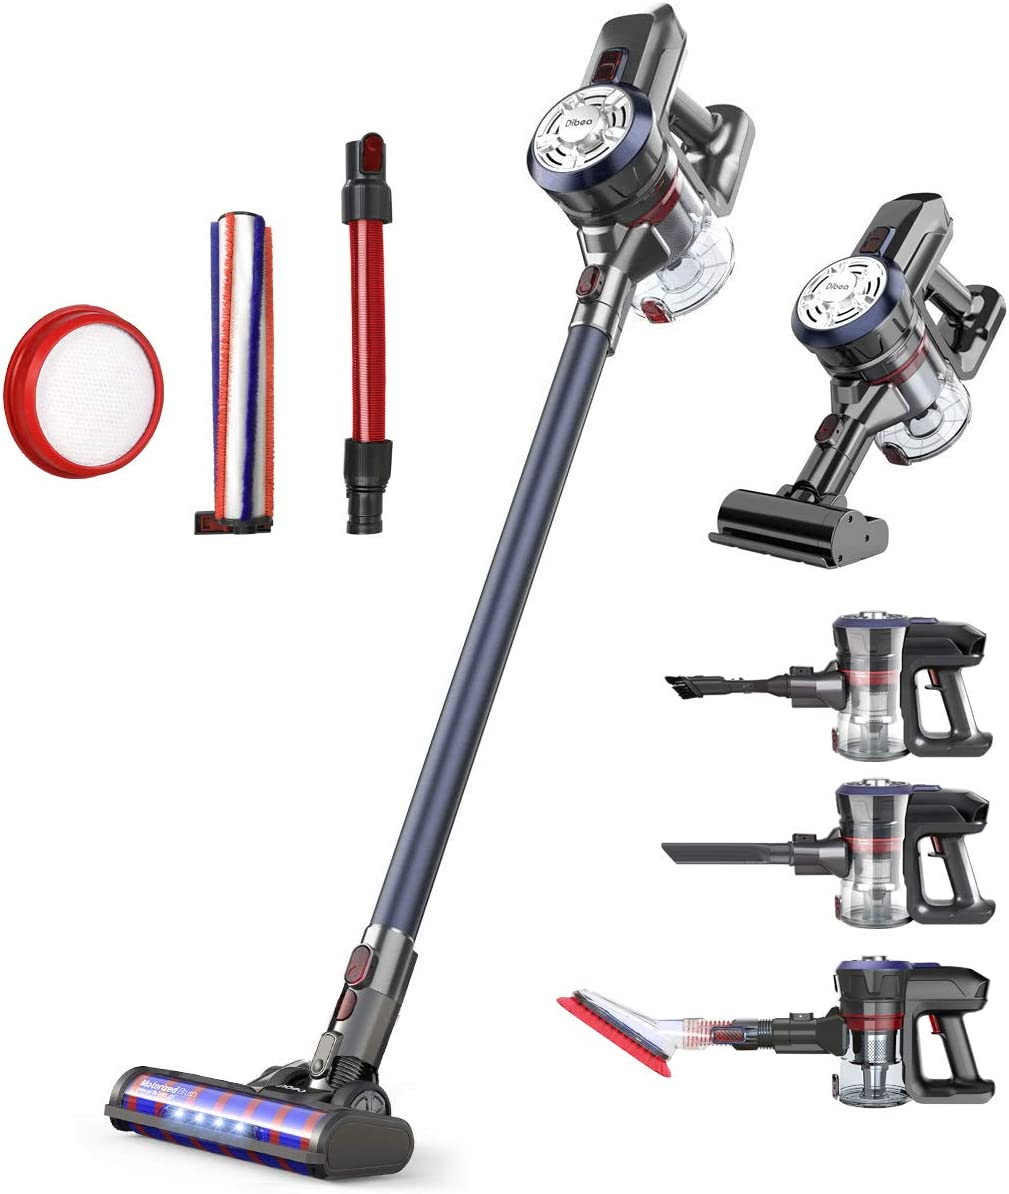 Dibea Upgrade Cordless Stick Vacuum Cleaner 250W Powerful Suction Bagless Lightweight Rechargeable 2 in 1 Handheld Car Vacuum for Carpet Hard Floor,